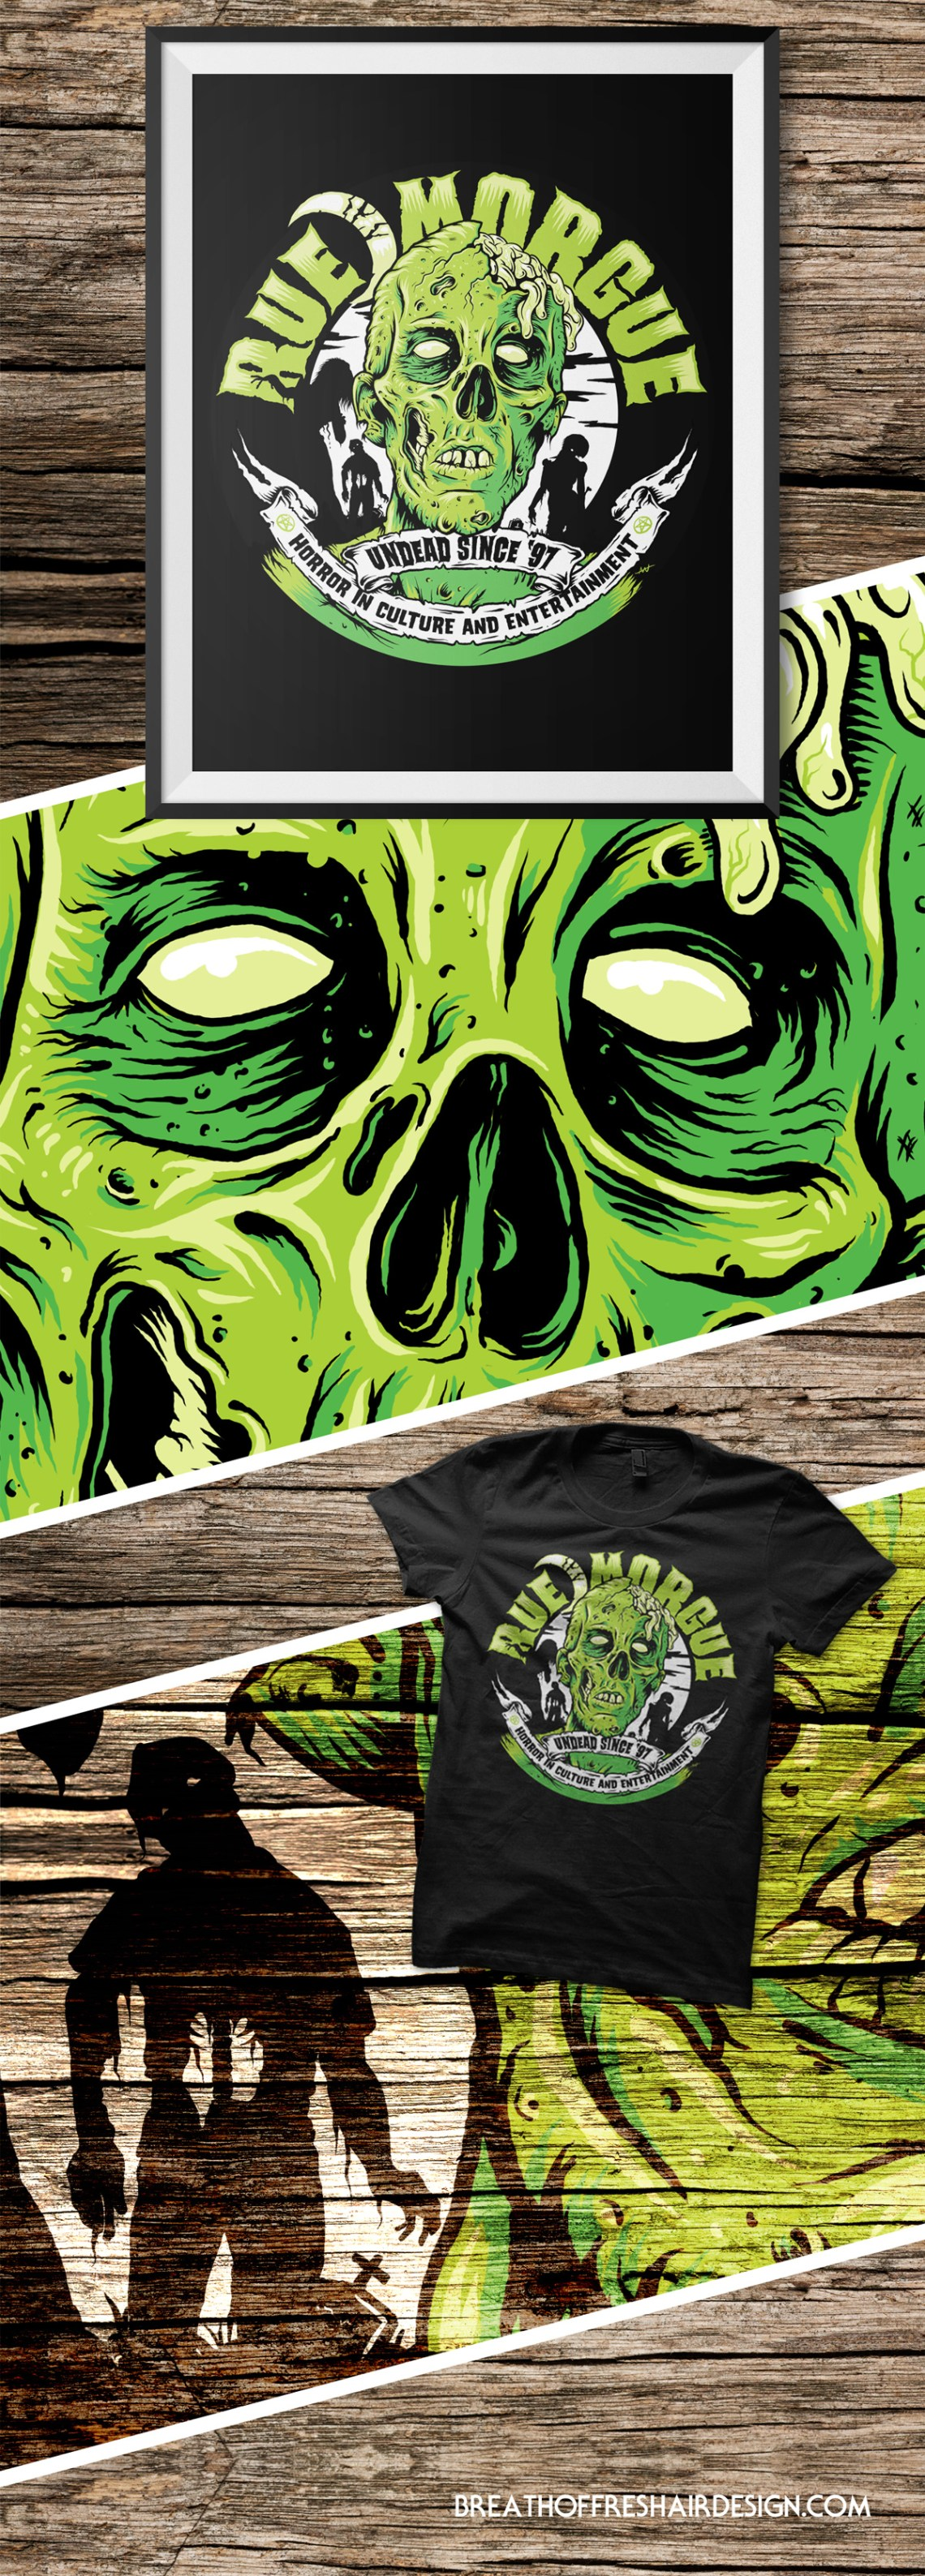 Rue Morgue, Magazine, Zombie, Horror, Death, Illustration, TShirt Design, Graphic Design, Toronto, Skull, Brains, Breath Of fresh Air Design